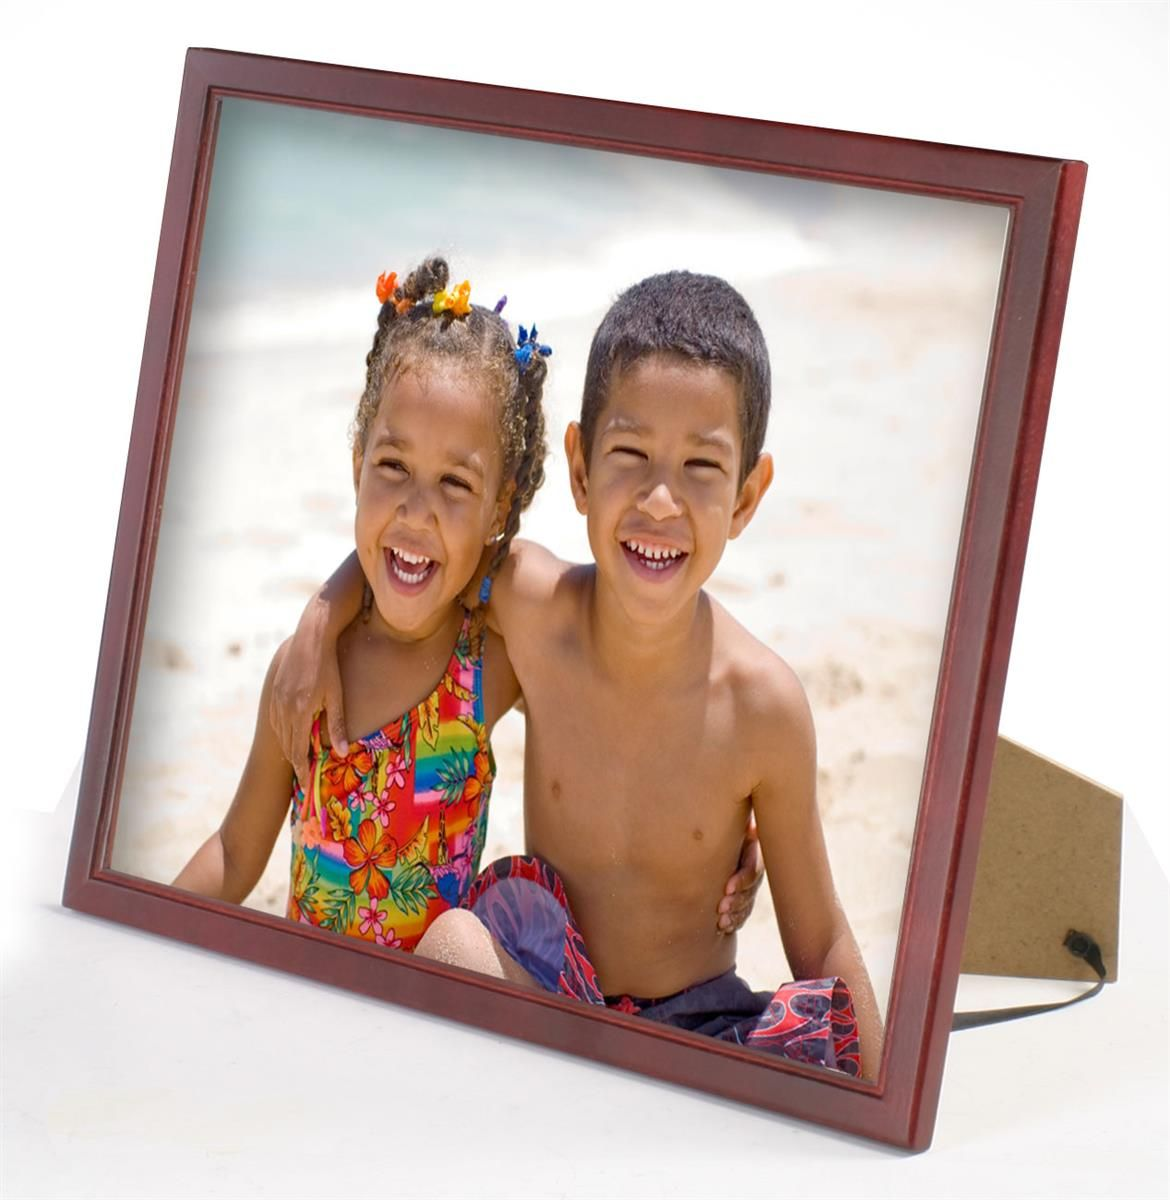 10 5 X 13 Wood Picture Frame For Table Or Wall Matted To 8 5 X 11 Mahogany Wood Picture Frames Picture Frames Picture On Wood